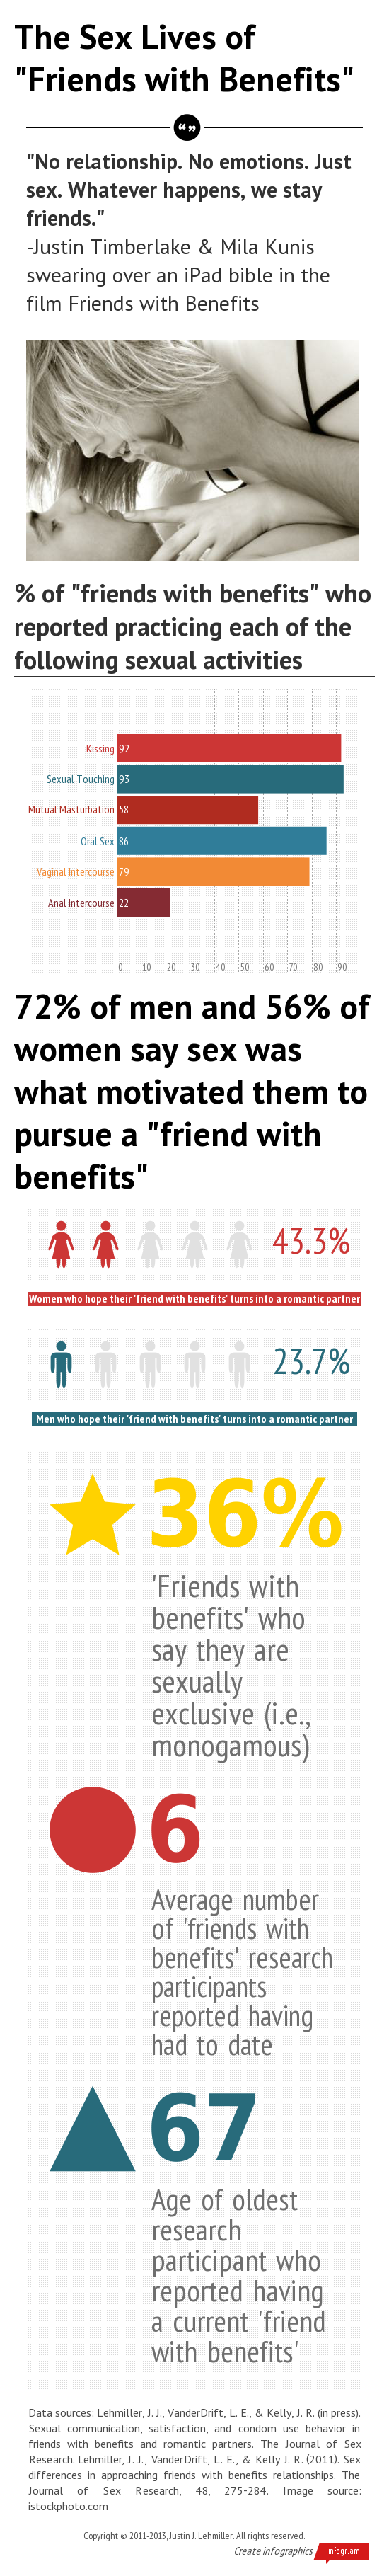 sex-lives-of-friends-with-benefits